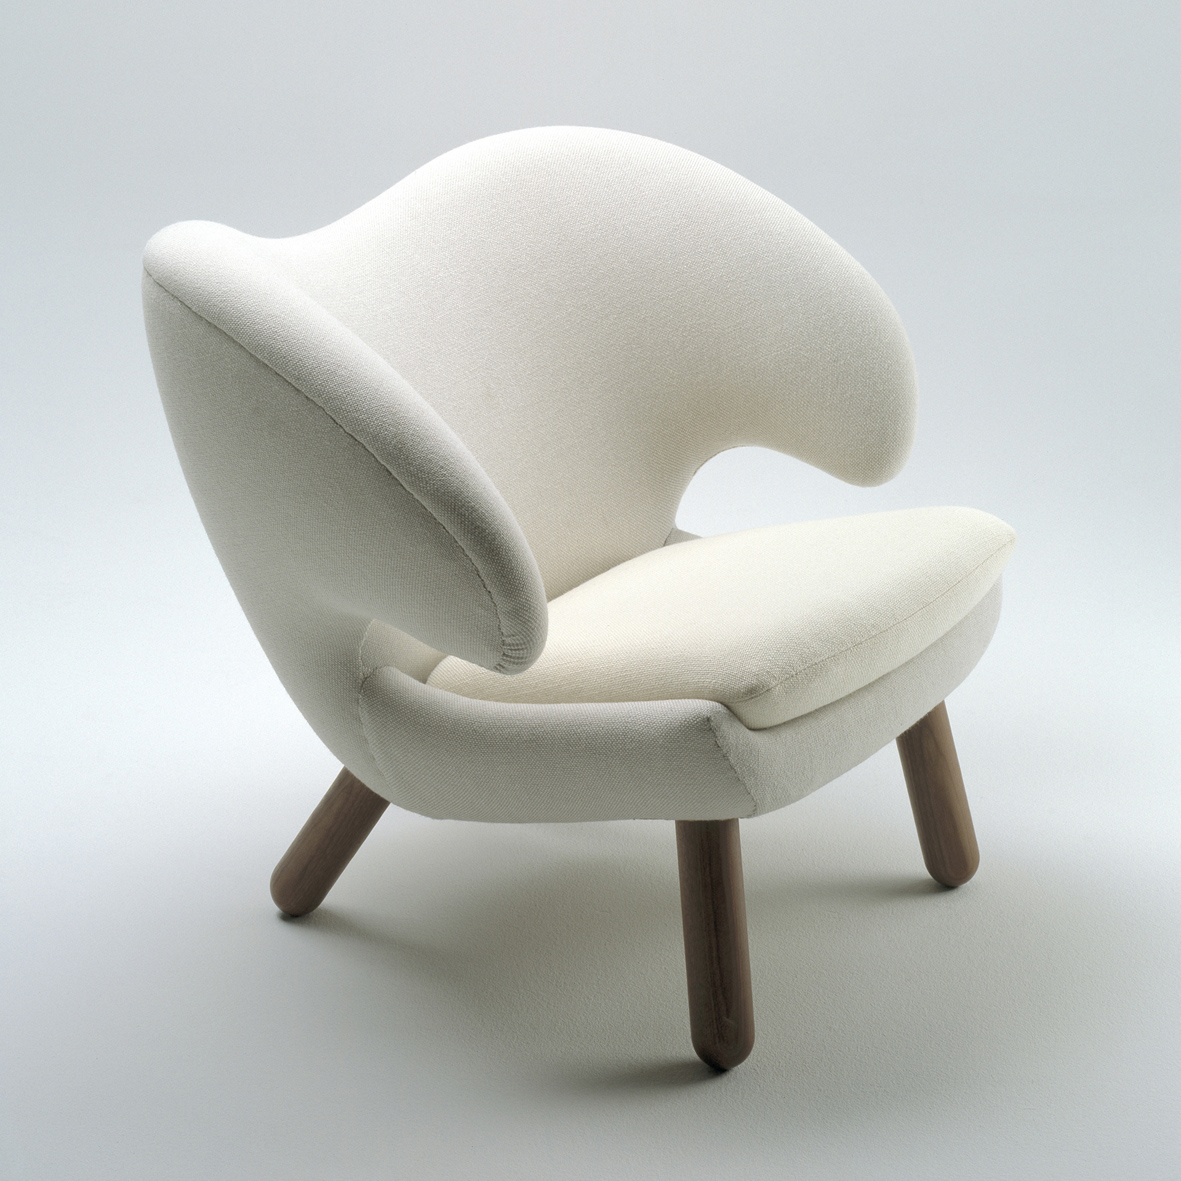 The pelican chair by finn juhl vliving for Comfy stylish chairs